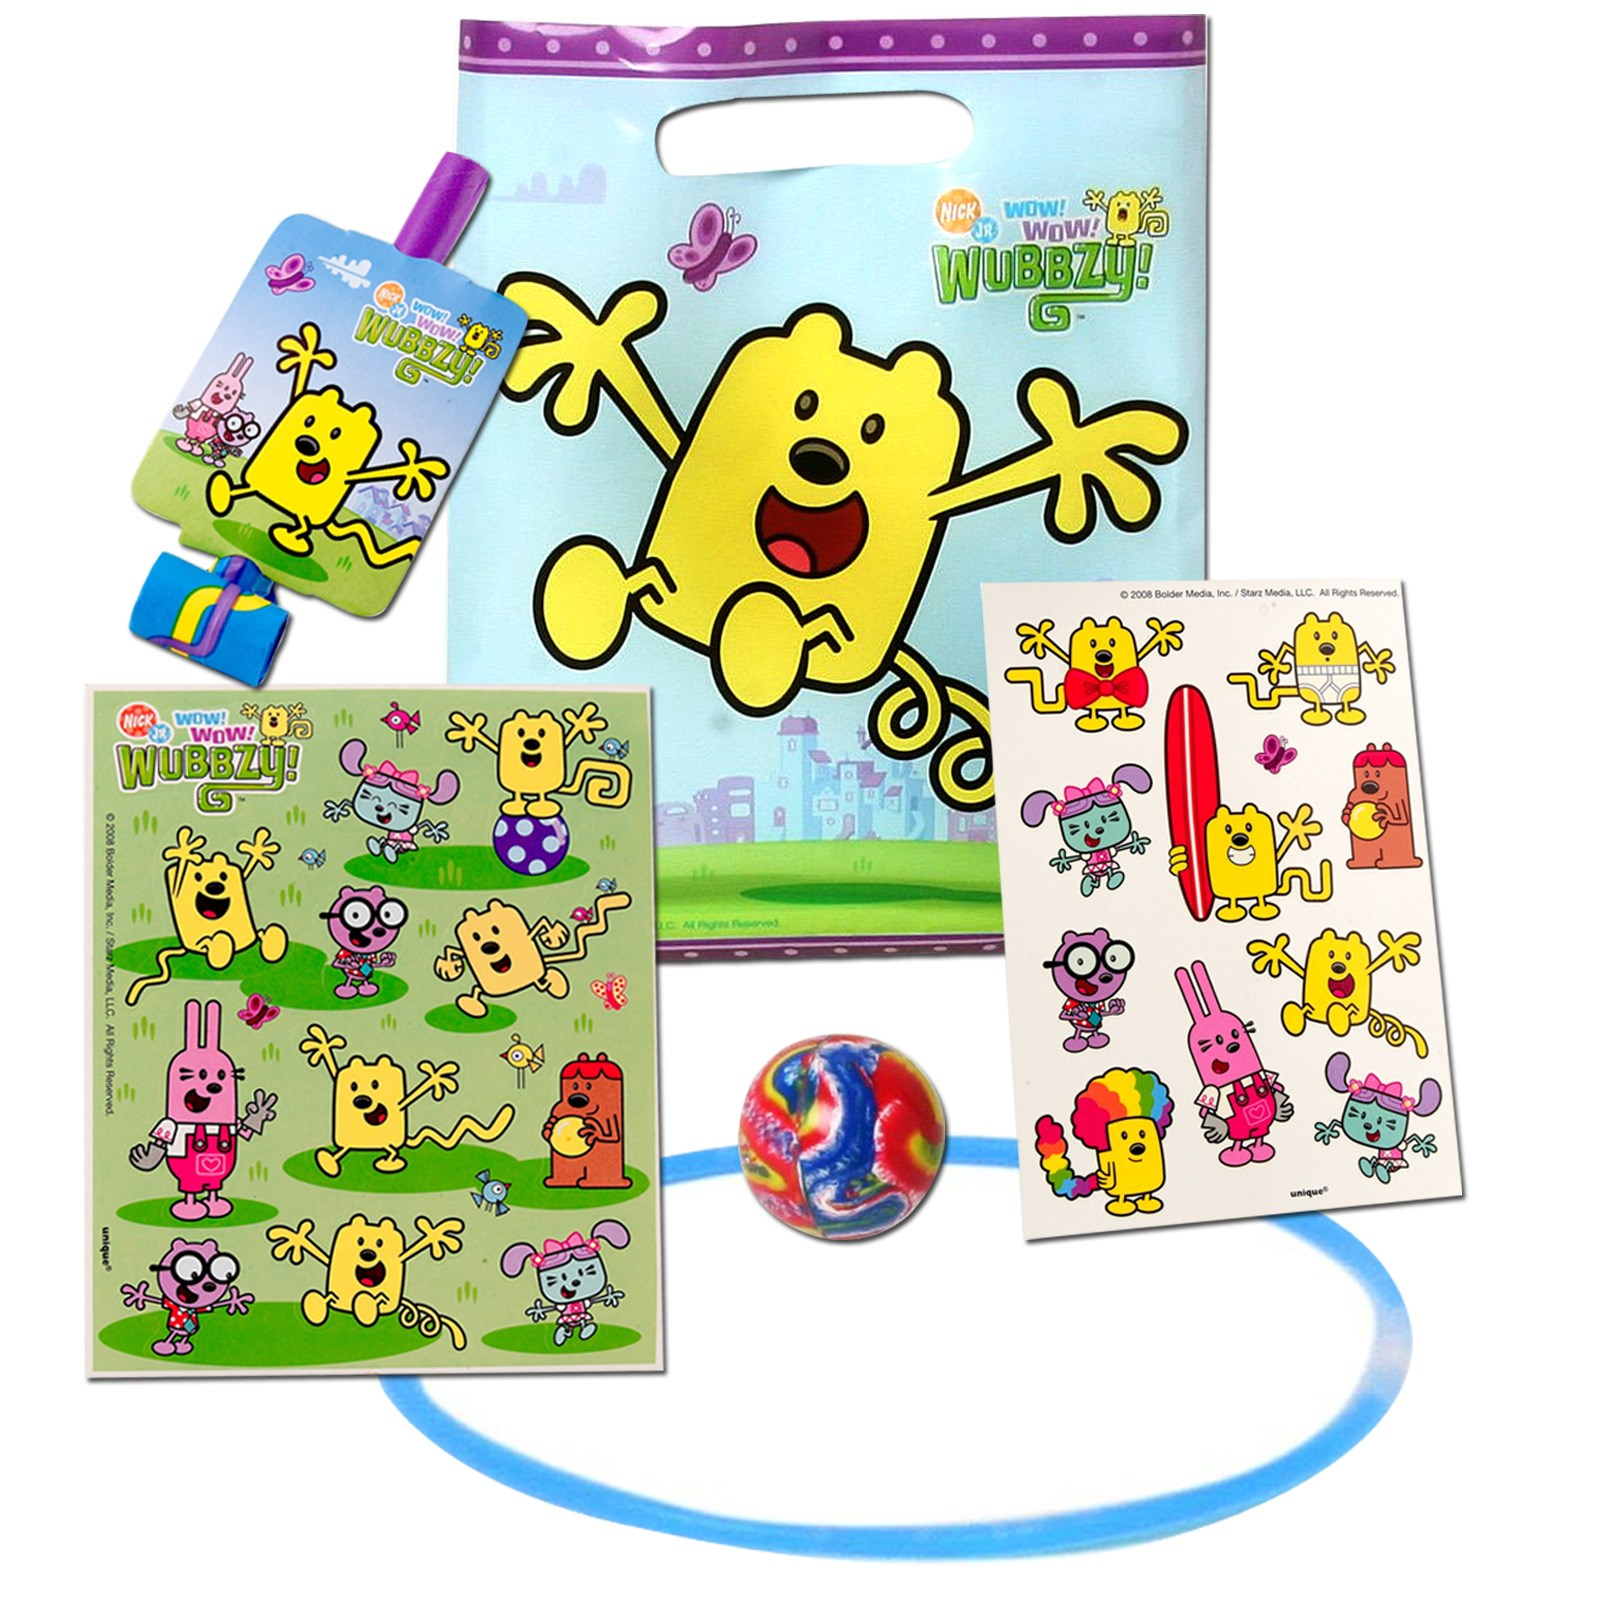 16154 Results In: Halloween Costumes; Wow! Wow! Wubbzy! Party Favor Kit